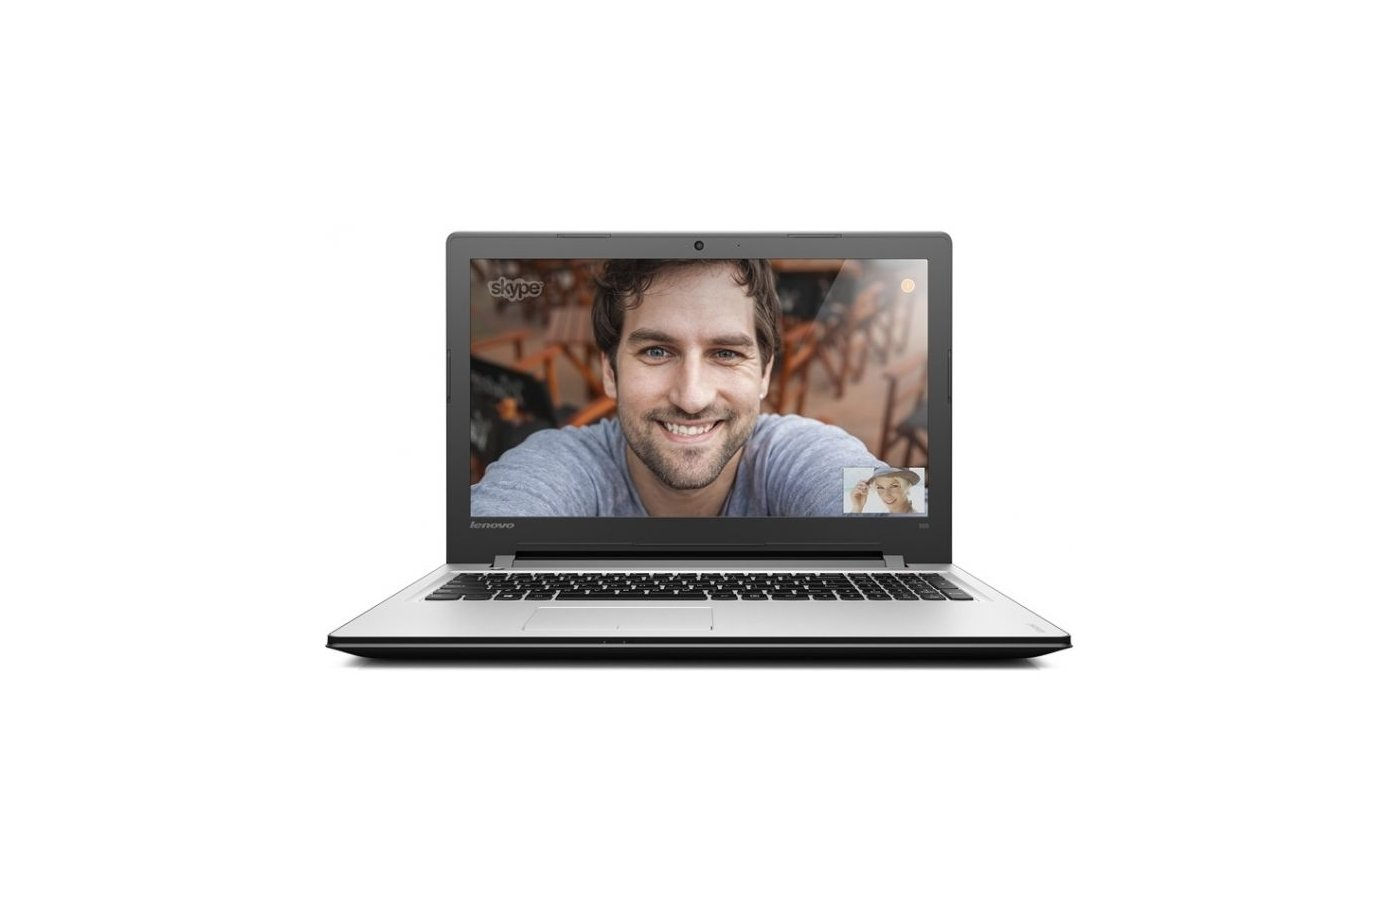 Ноутбук Lenovo IdeaPad 300-15IBR /80M300MCRK/ intel N3710/4Gb/500Gb/15.6/WiFi/Win10